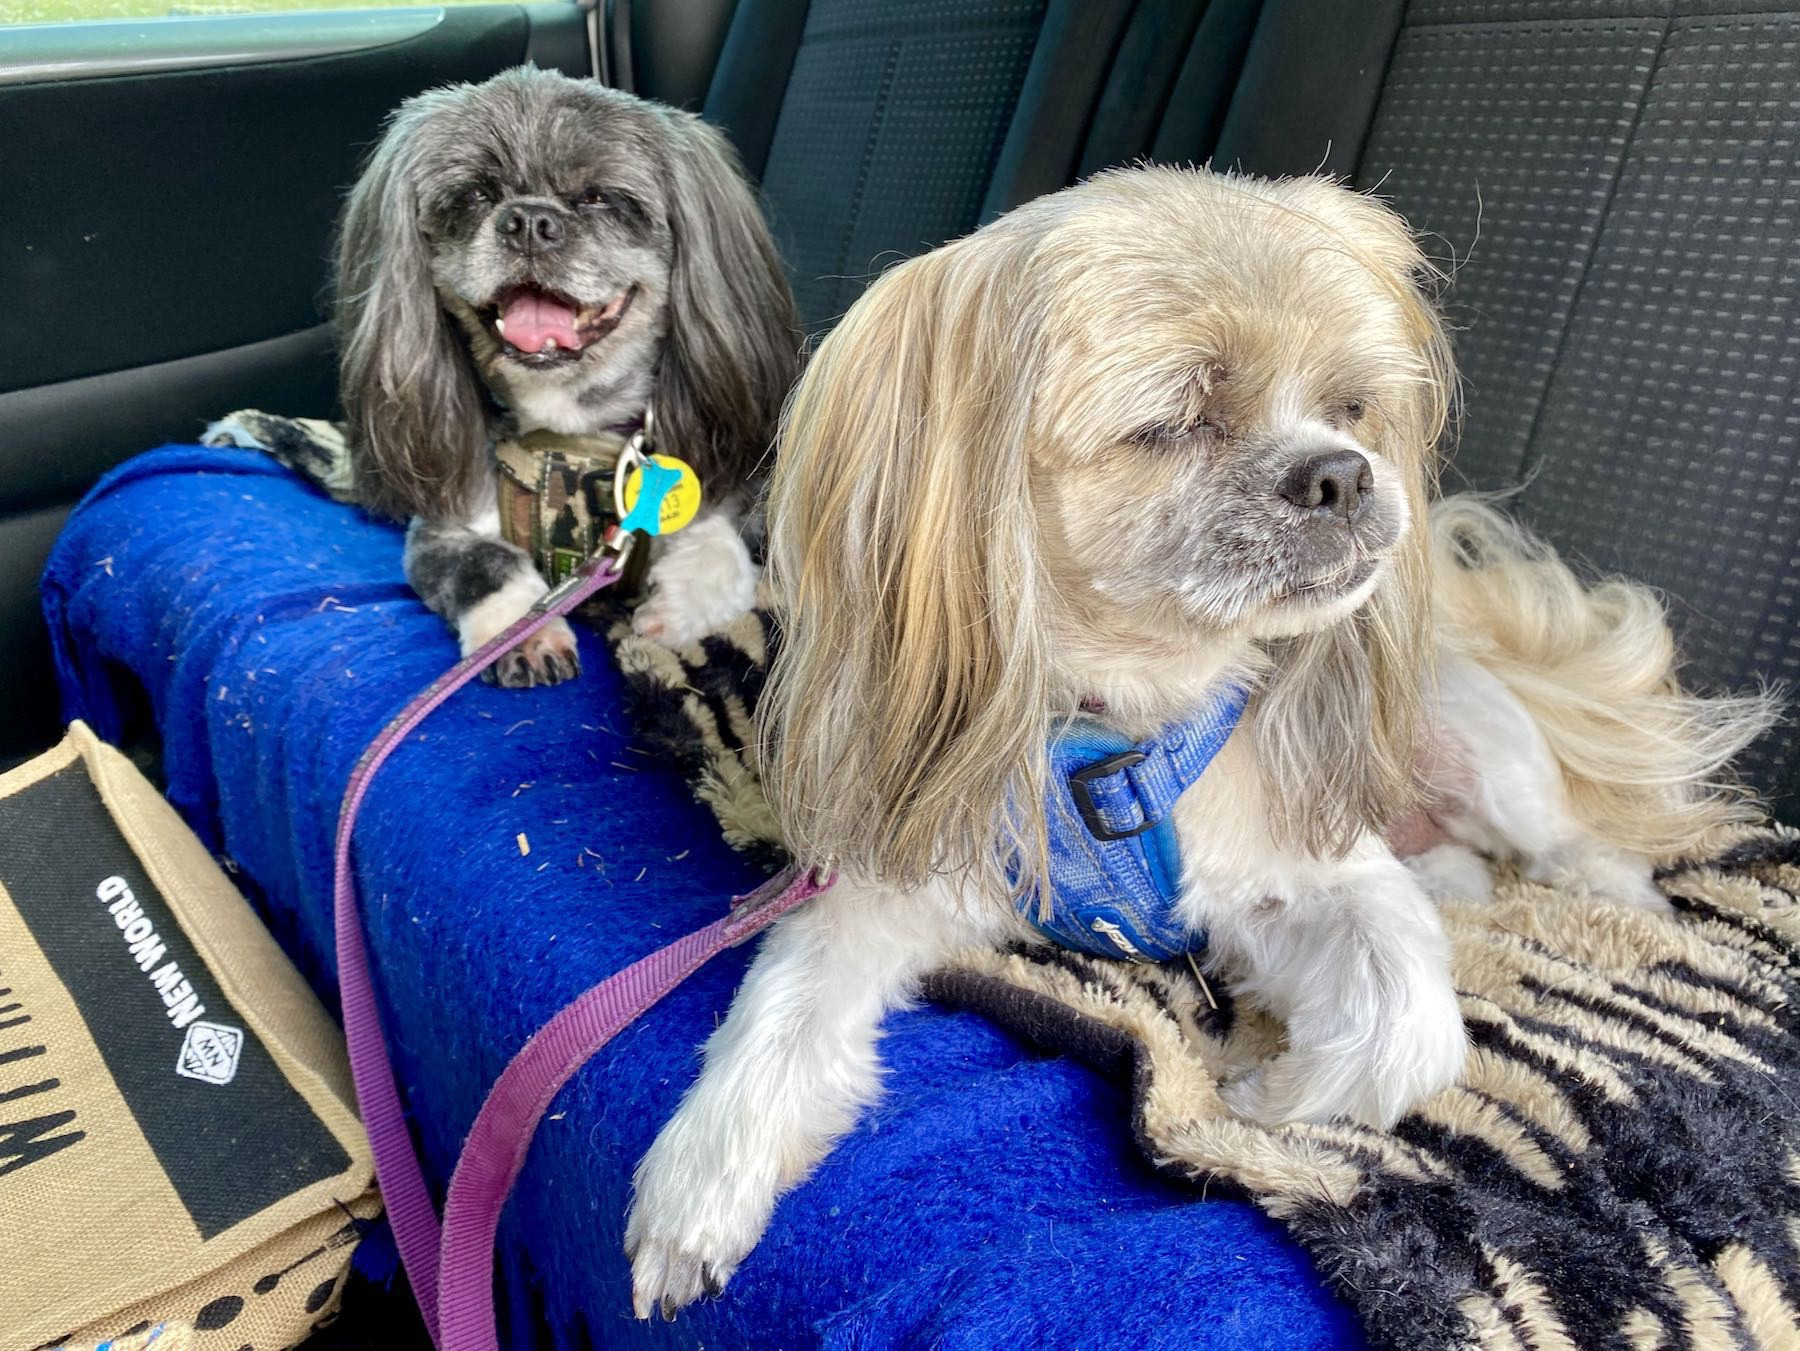 Two small dogs on a car seat.